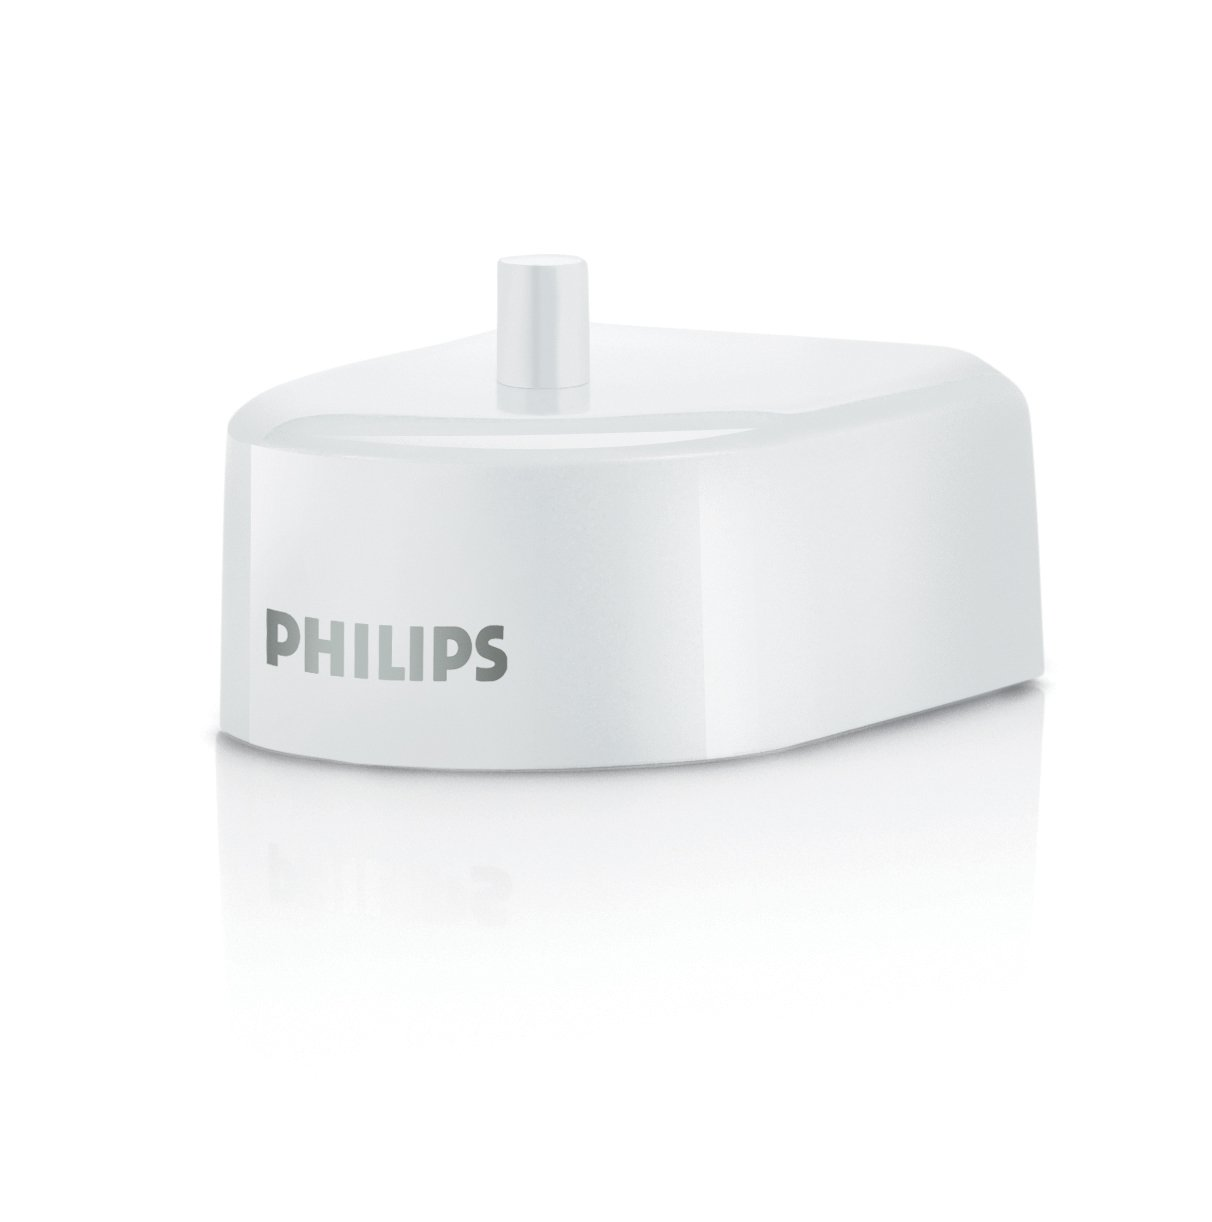 Philips Sonicare Travel Charger, HX6000/01 Philips Oral Healthcare